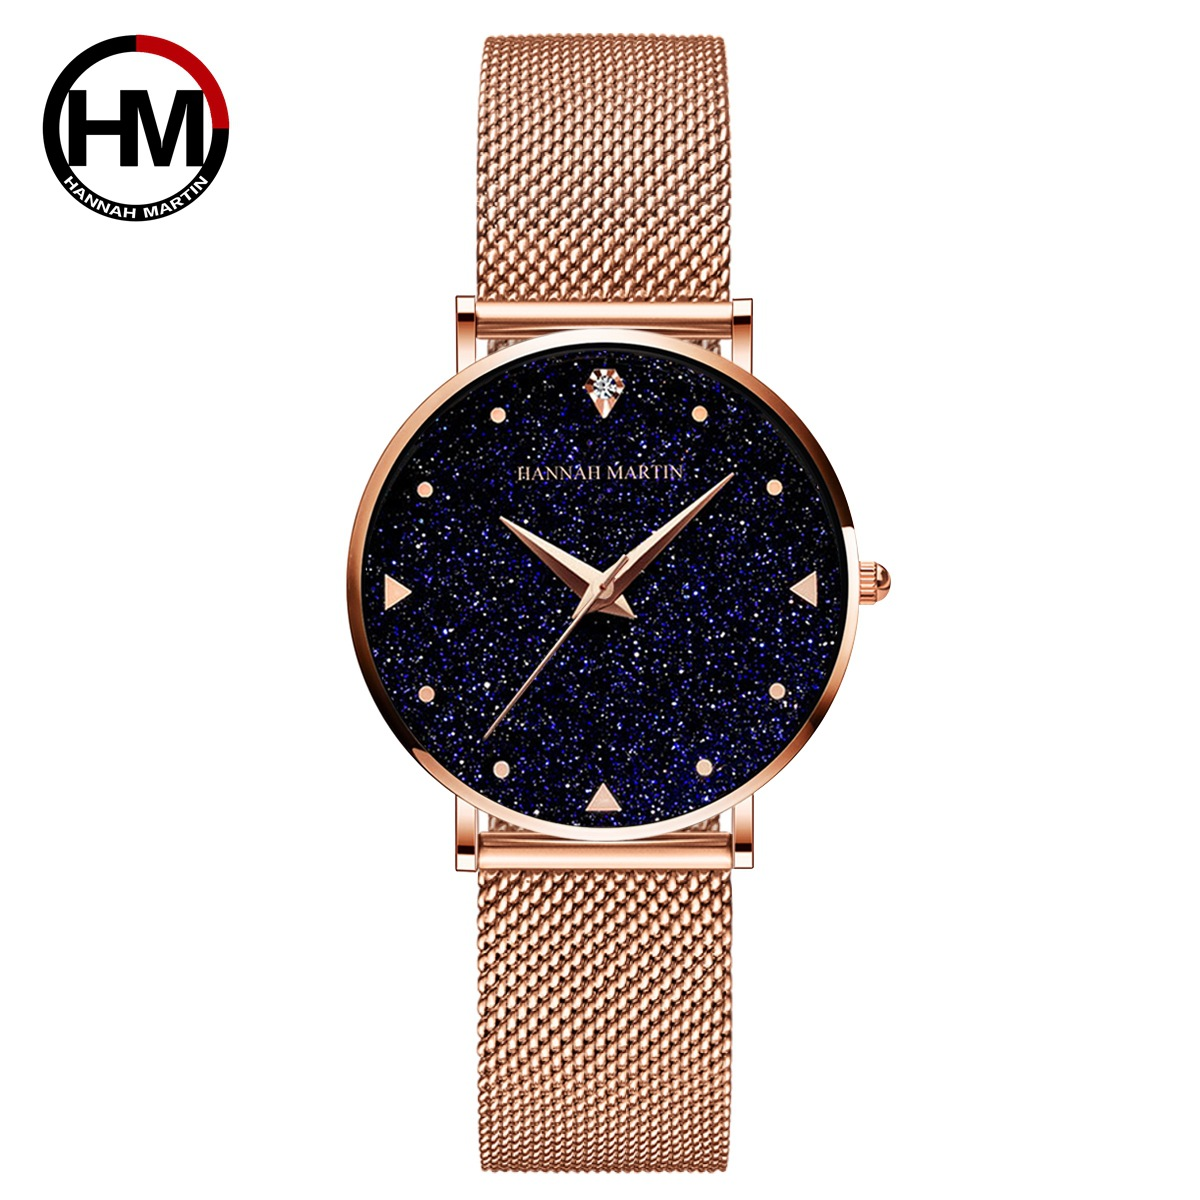 Hannah Martin Starry Sky Women Watches Top Brand Luxury Japan Quartz Movement Stainless Steel Waterproof Watch Relogio Feminino